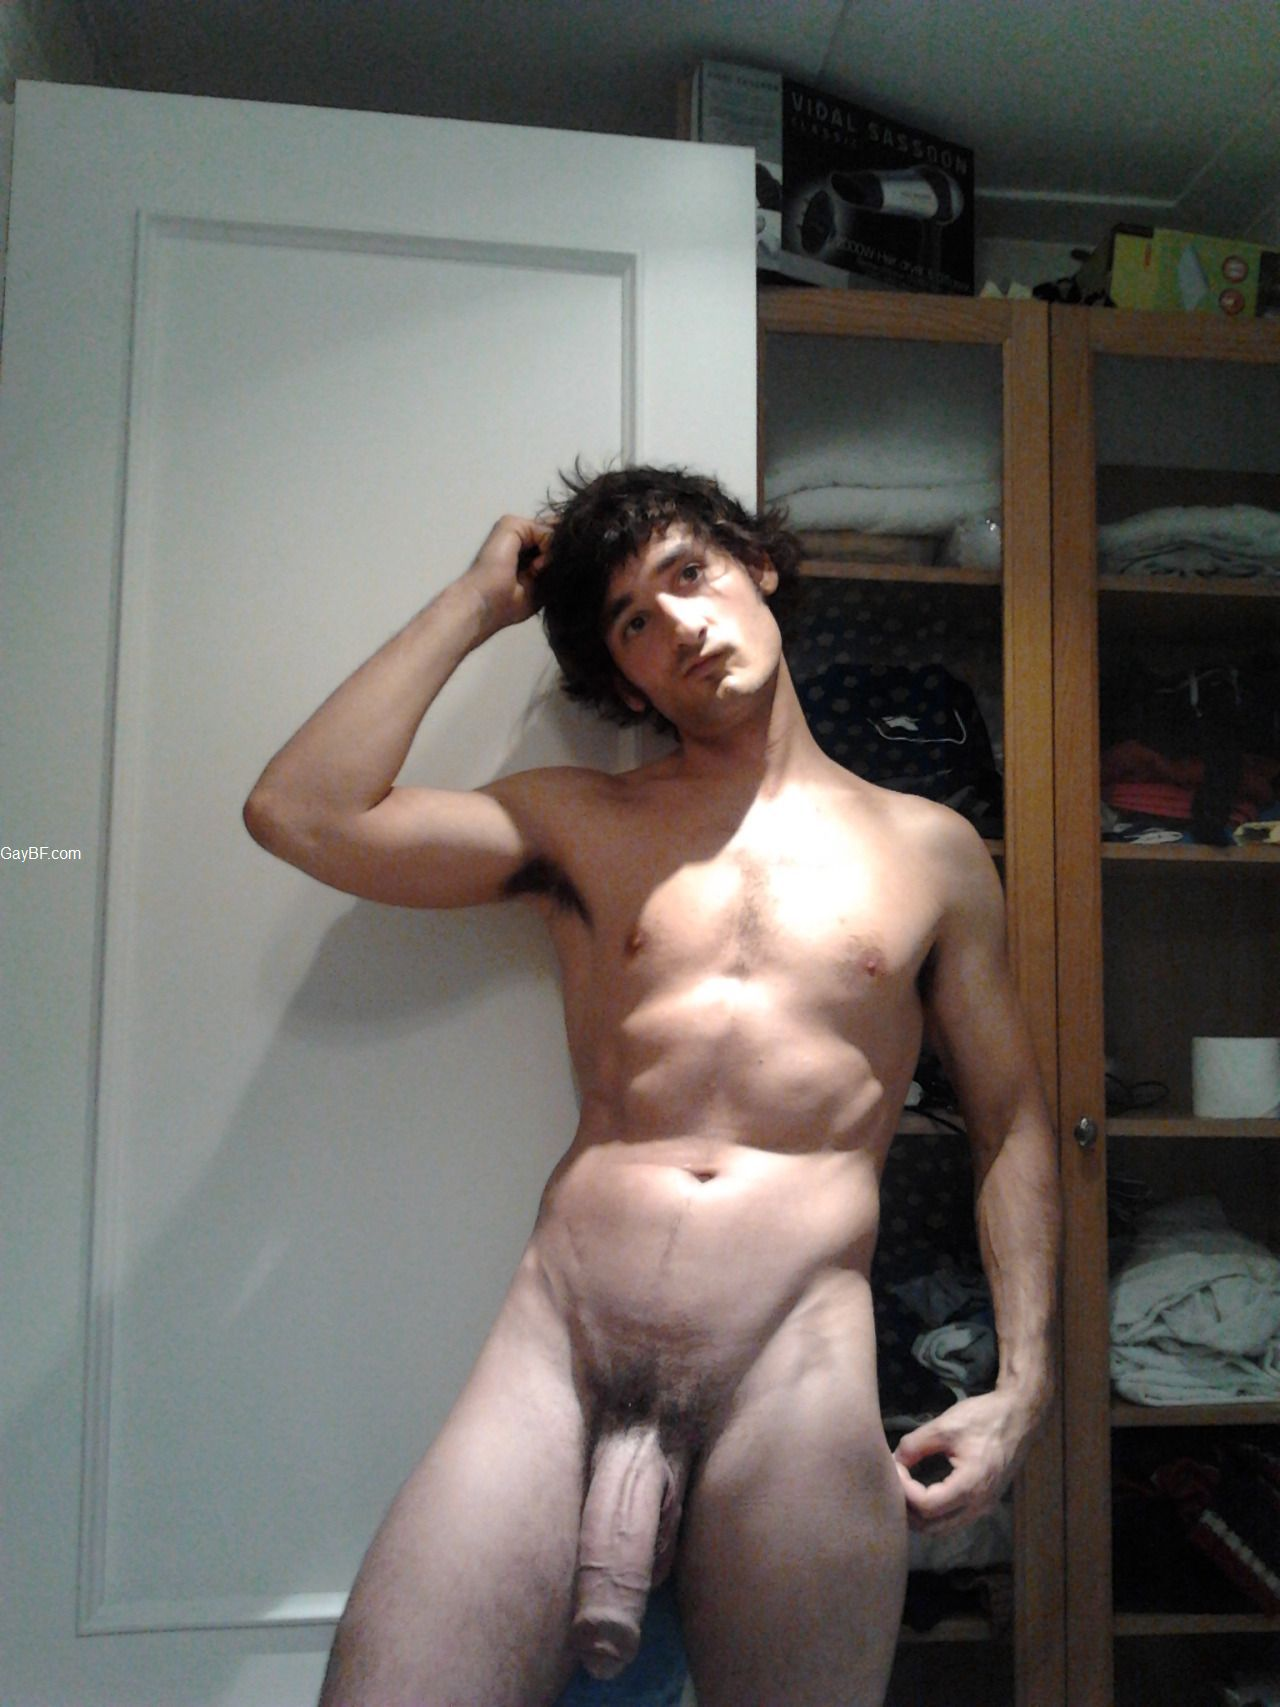 gratis webcam sexo gay